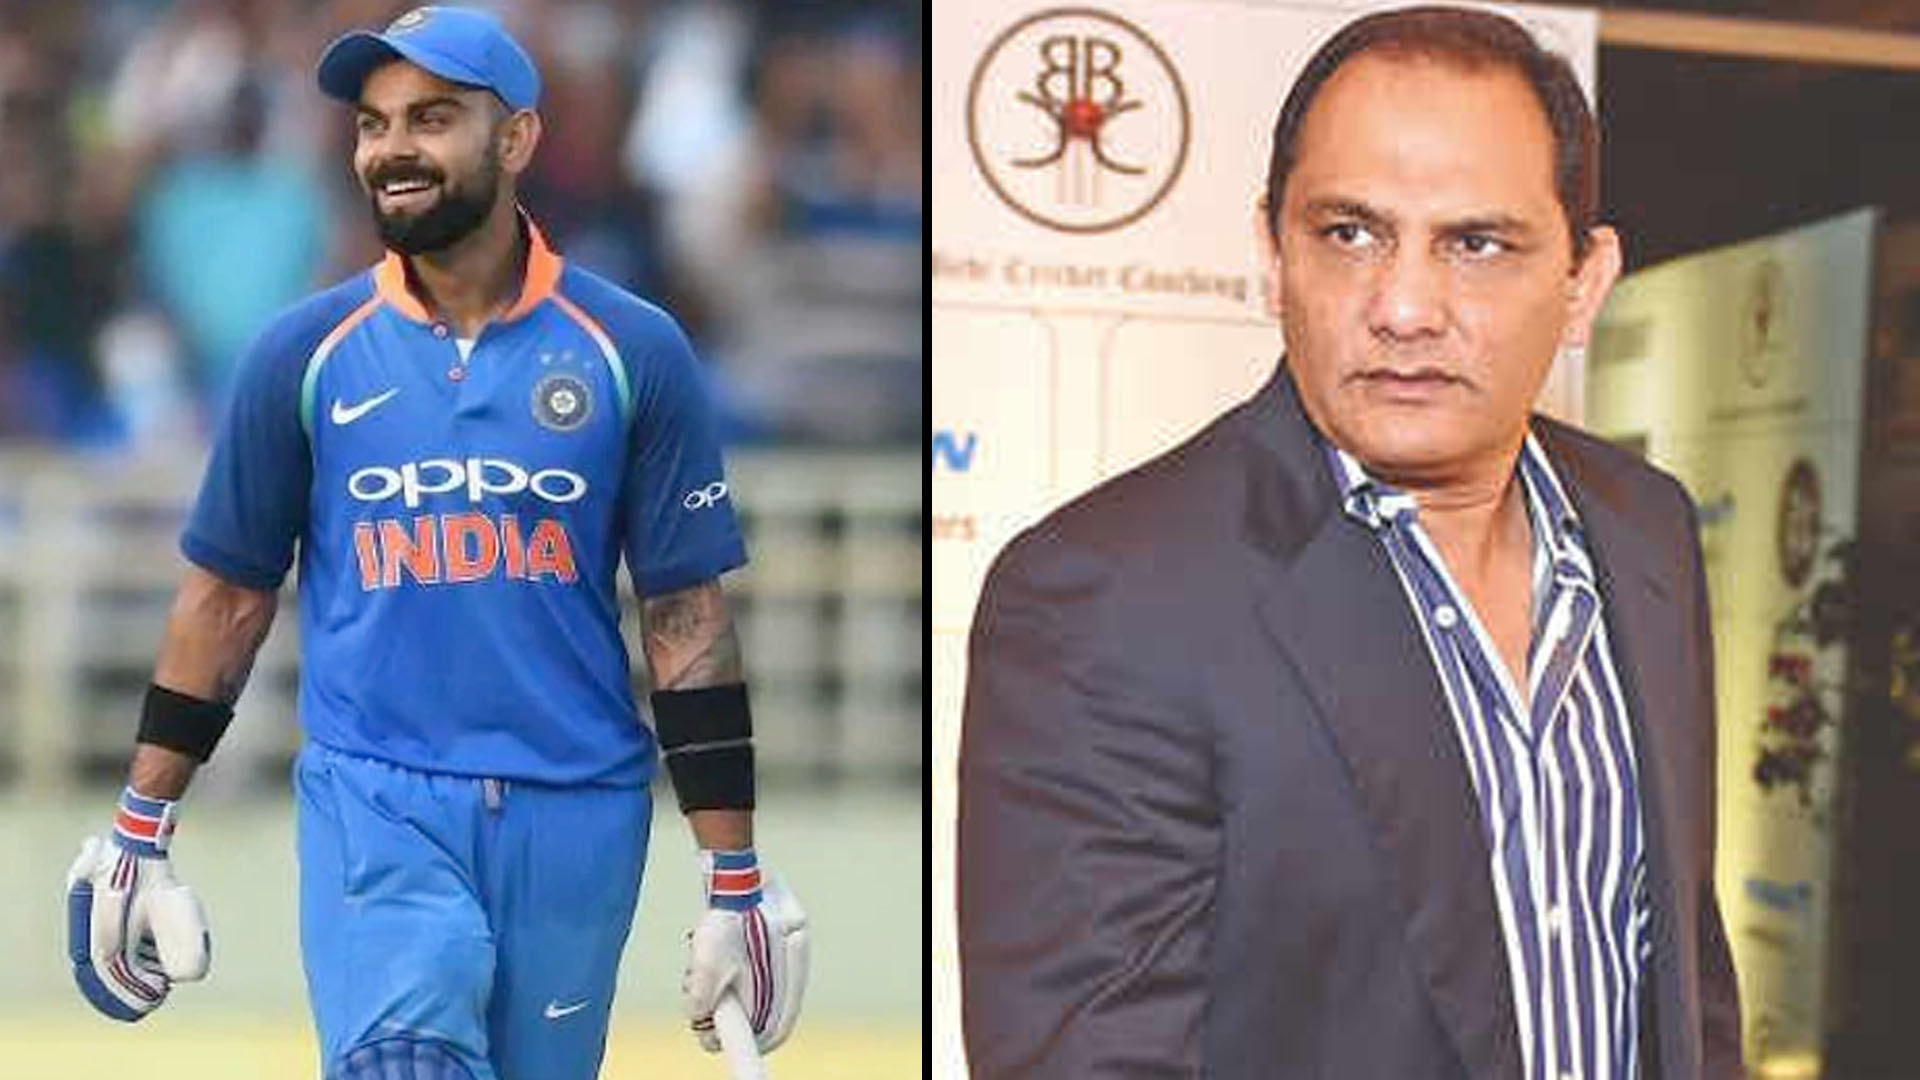 ICC Cricket World Cup 2019: Mohammad Azharuddin : 'Disappointing If India Doesn't Win The World Cup'